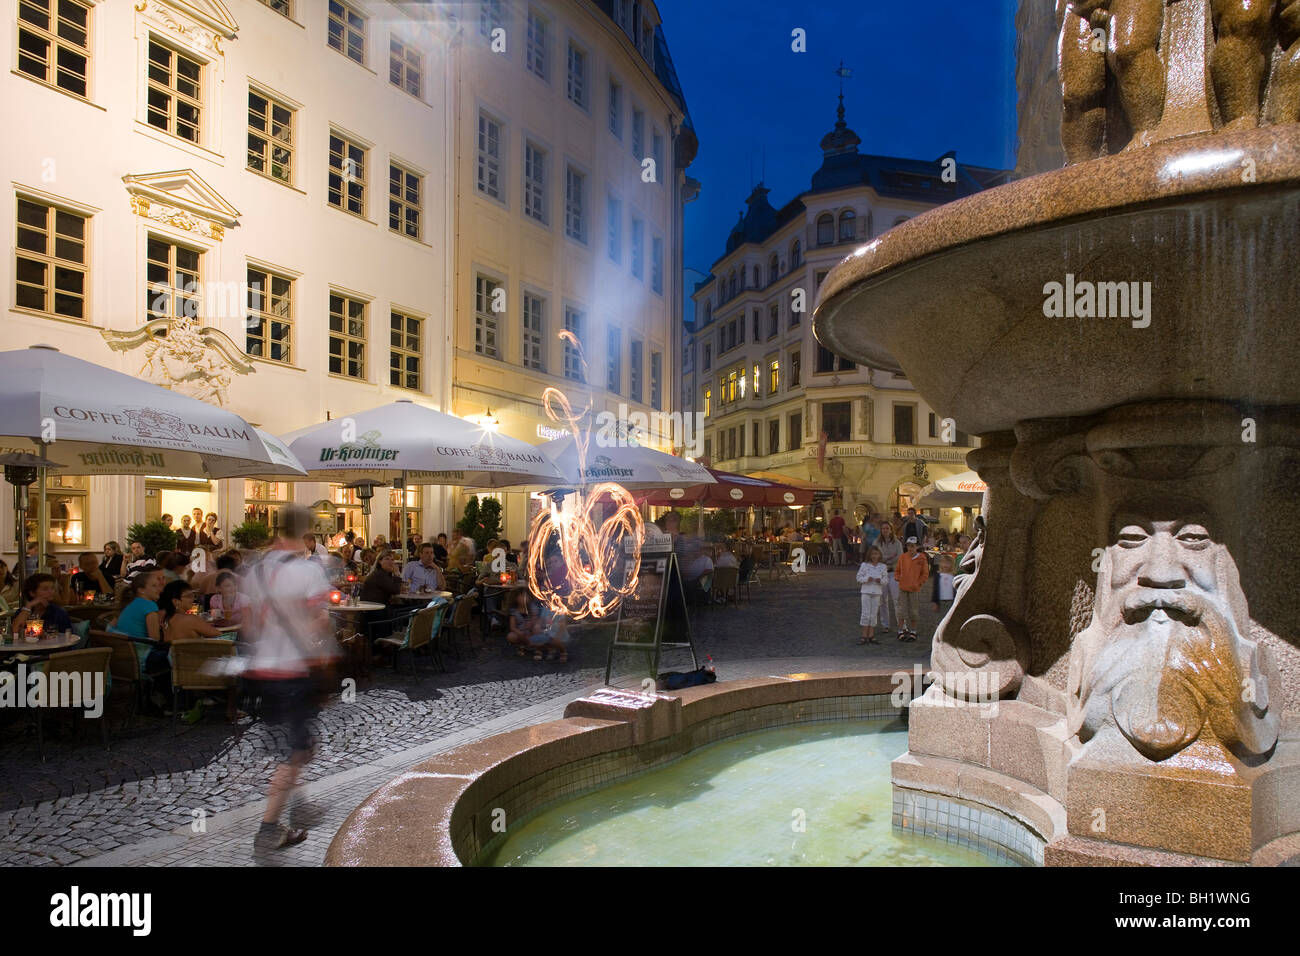 Fountain and people at Cafe Baum in the evening, Drallewatsch, Fleischergasse, Leipzig, Saxony, Germany, Europe - Stock Image